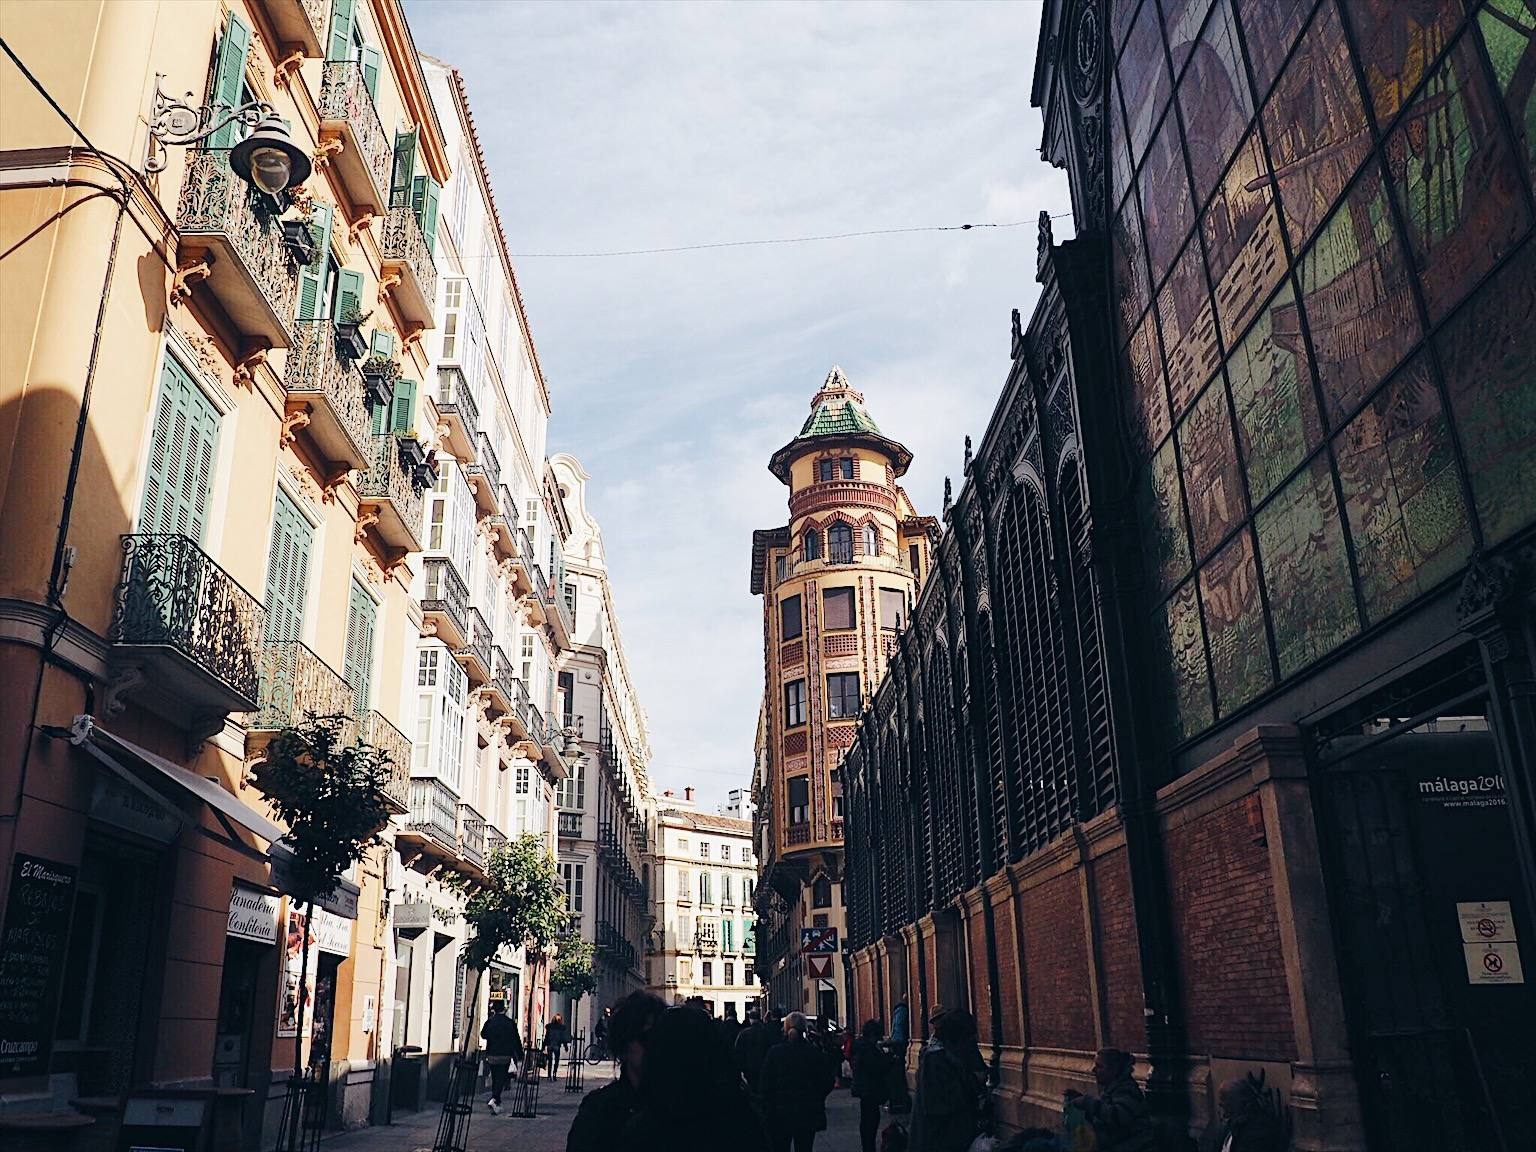 One day guide to Malaga